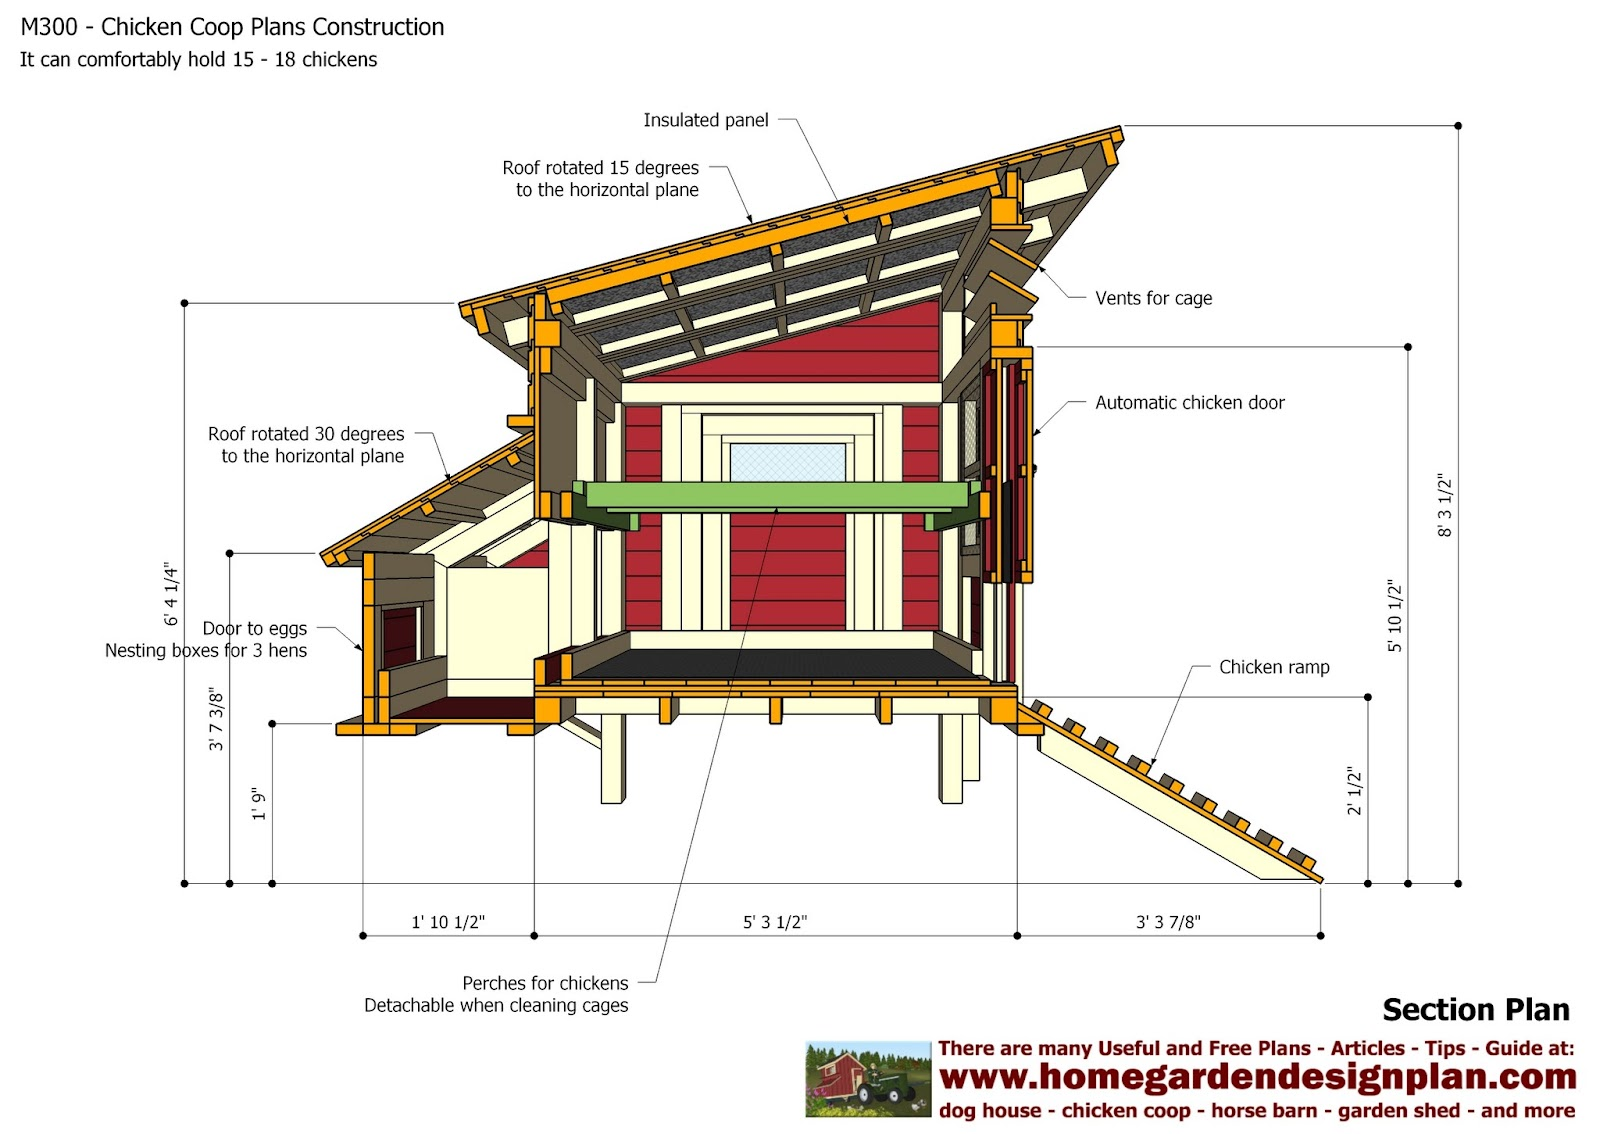 Home garden plans m300 chicken coop plans chicken for Plans for chicken coops